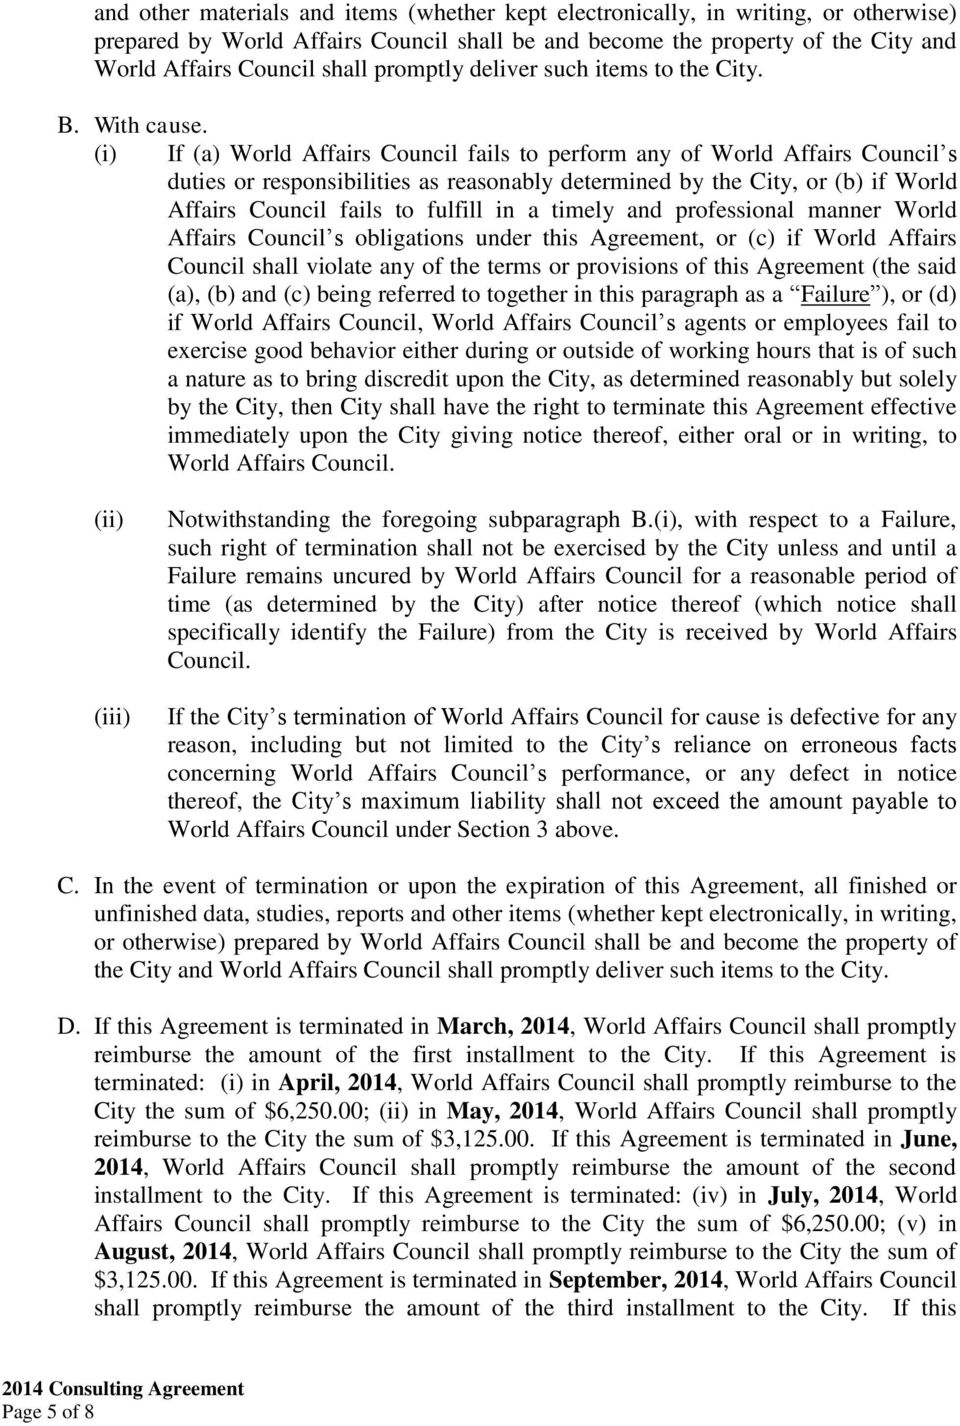 (i) If (a) World Affairs Council fails to perform any of World Affairs Council s duties or responsibilities as reasonably determined by the City, or (b) if World Affairs Council fails to fulfill in a